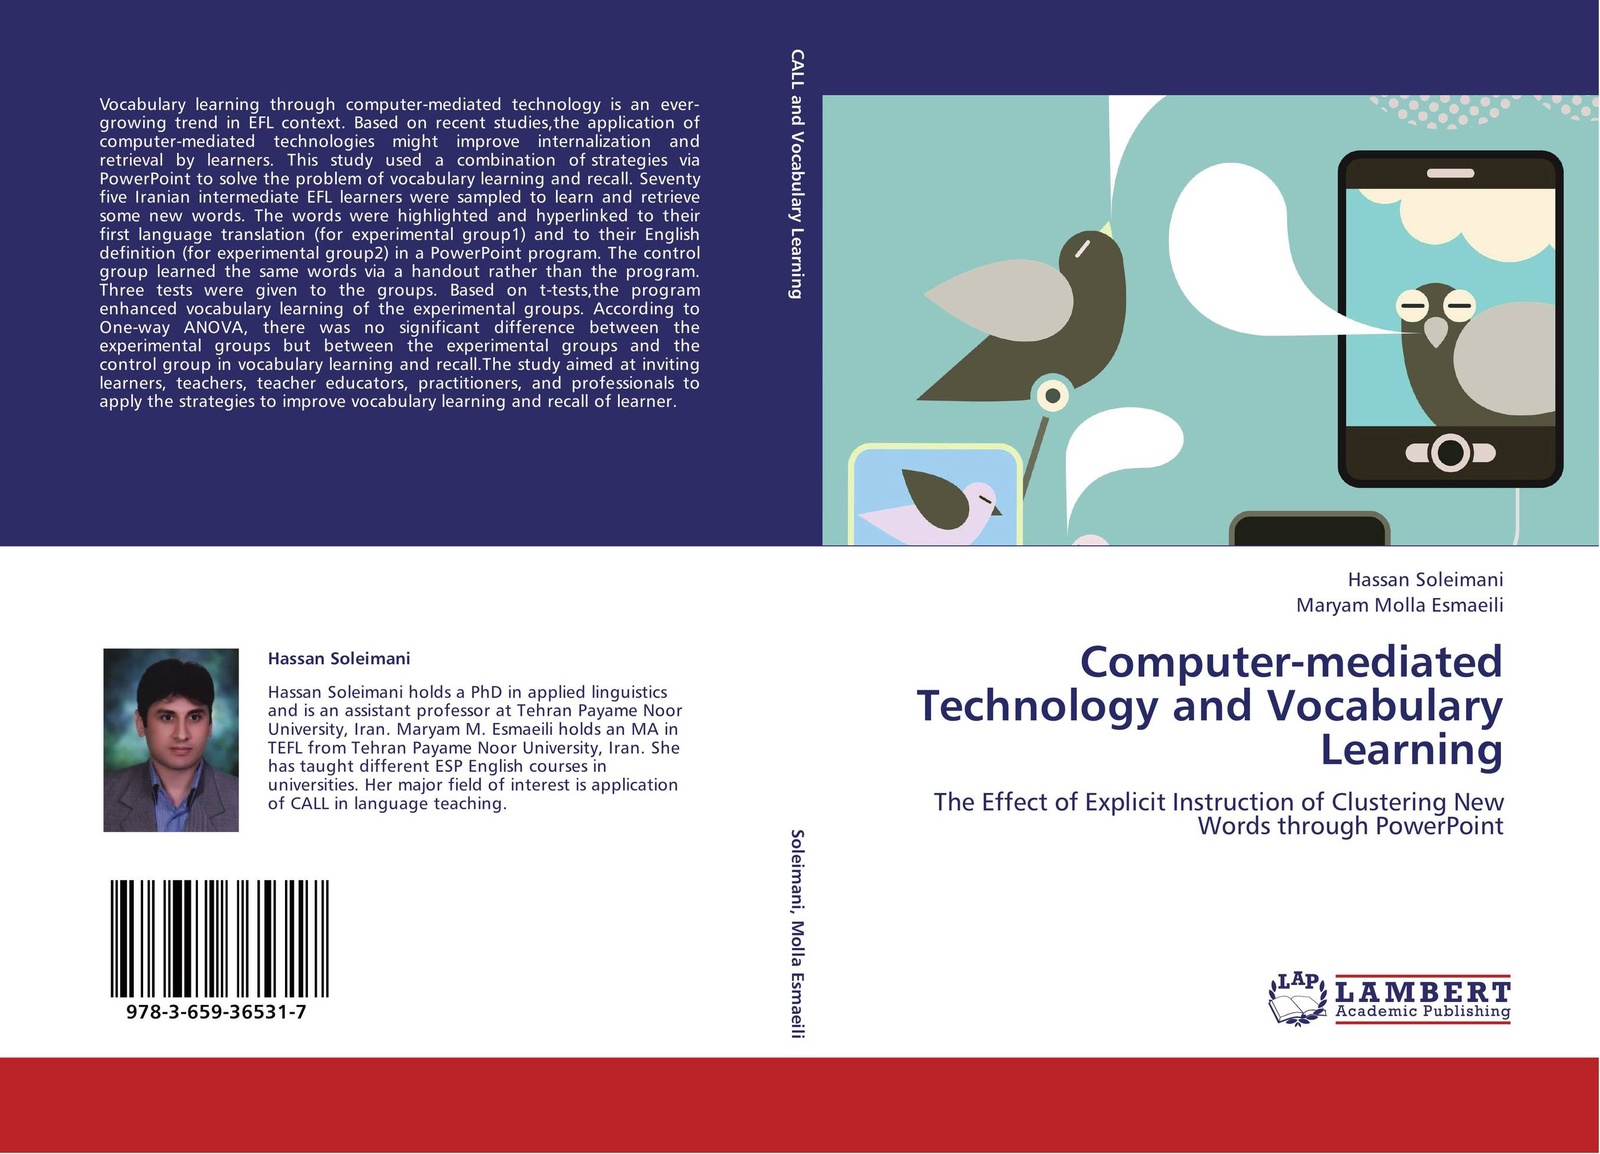 Hassan Soleimani and Maryam Molla Esmaeili Computer-mediated Technology and Vocabulary Learning цена